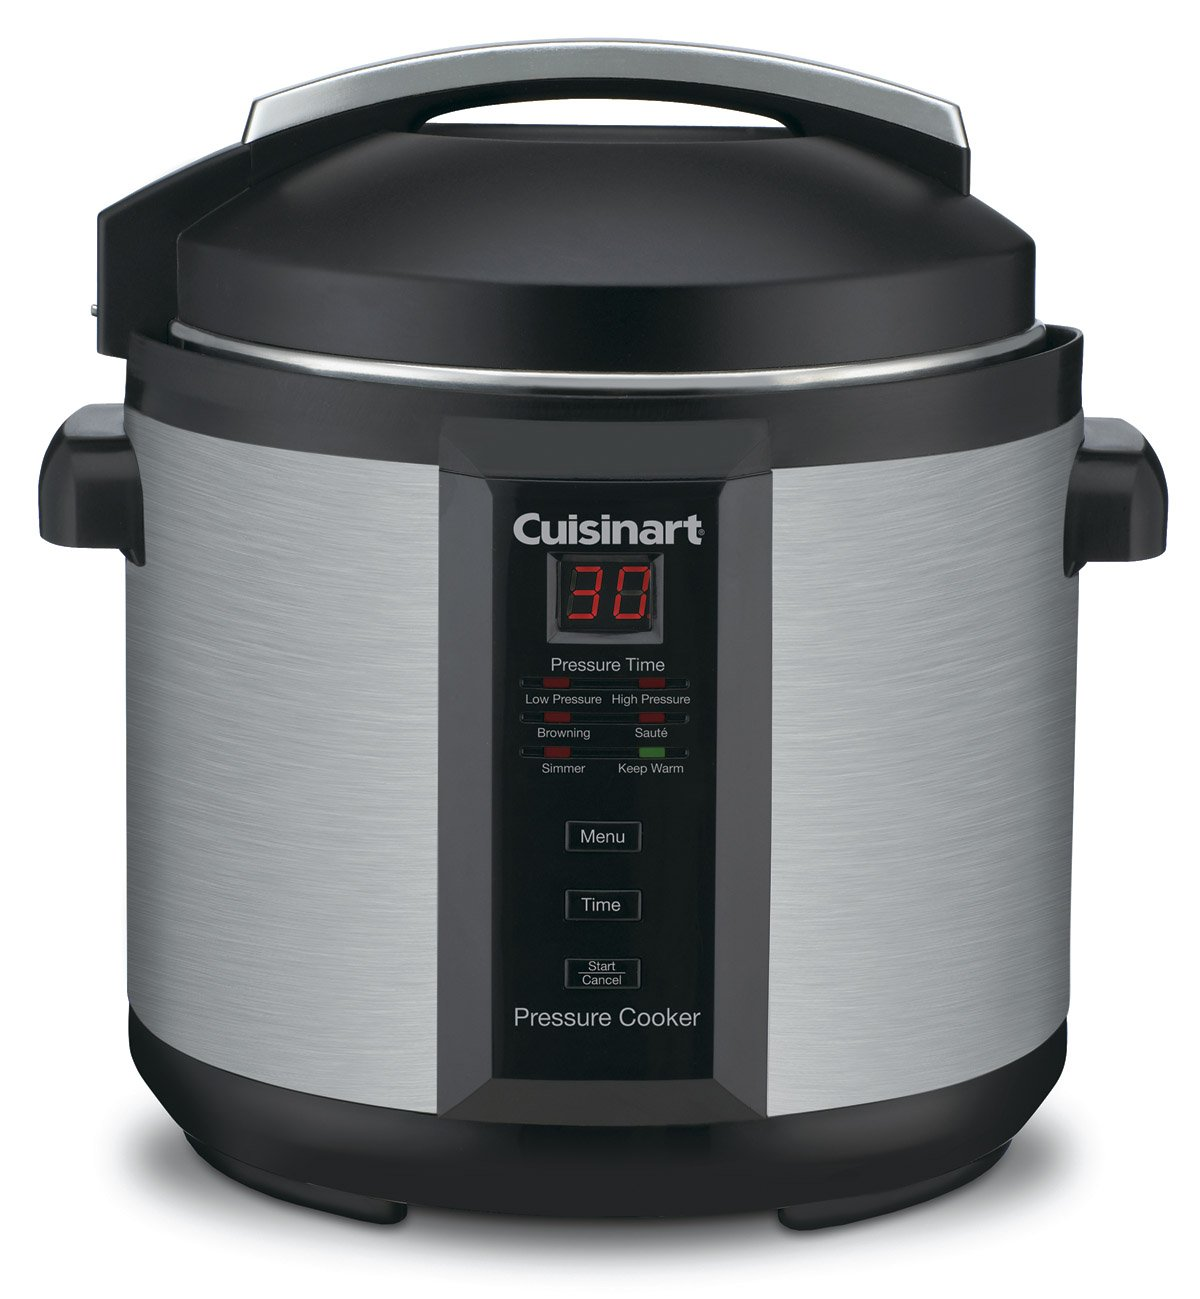 Cuisinart 1000-Watt 6-Quart Electric Pressure Cooker, Brushed Stainless and Matte Blac